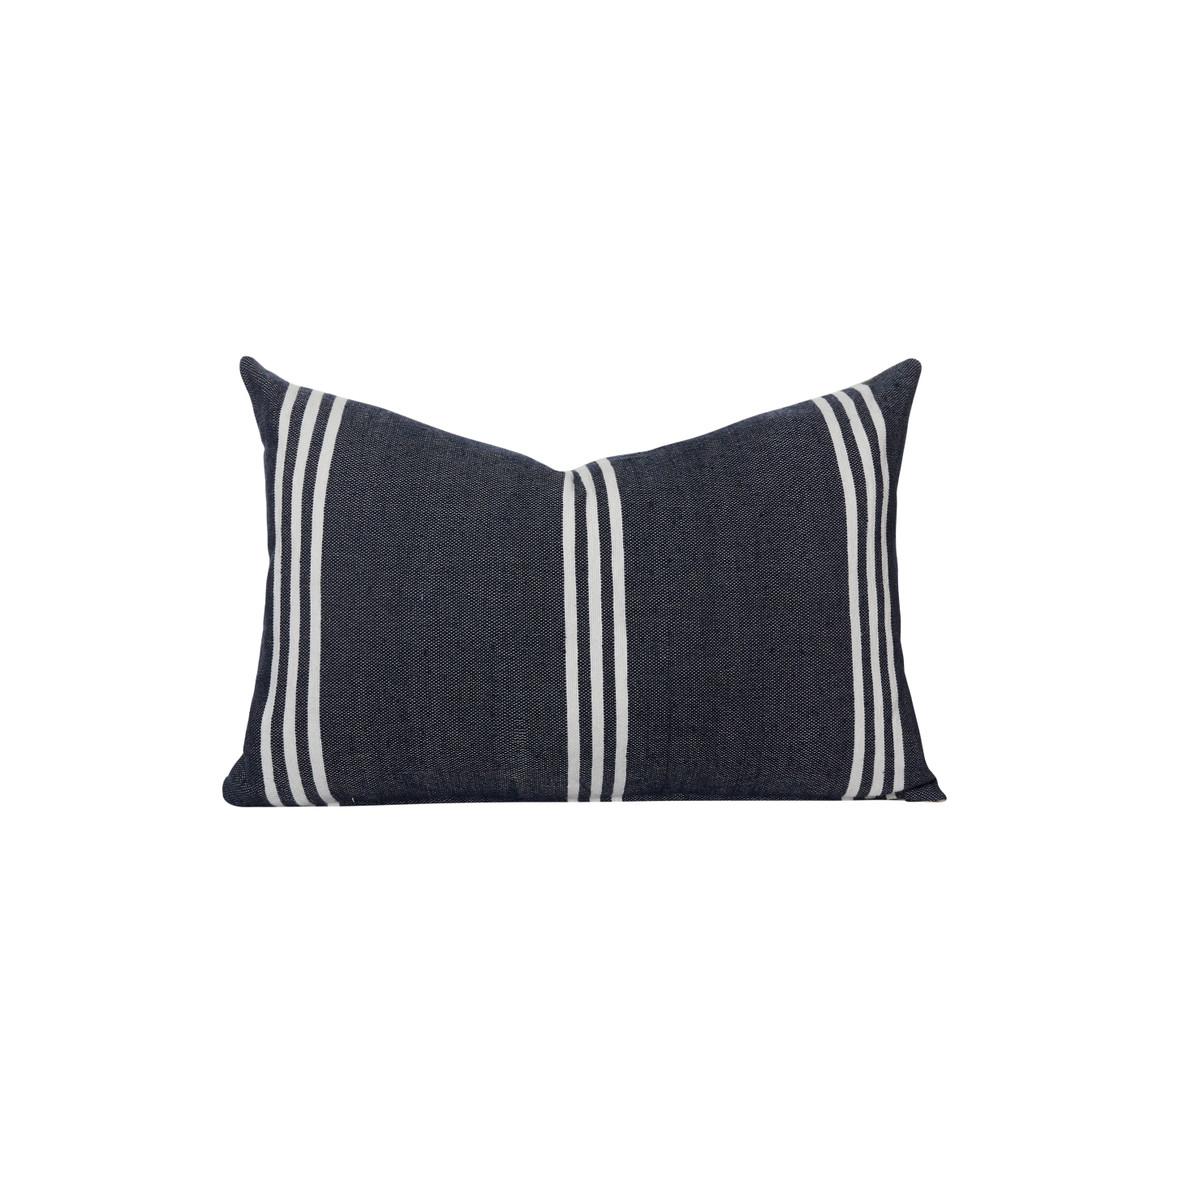 Three Stripe Navy and White Cotton Stripe Moroccan Decorative Lumbar Pillow - front